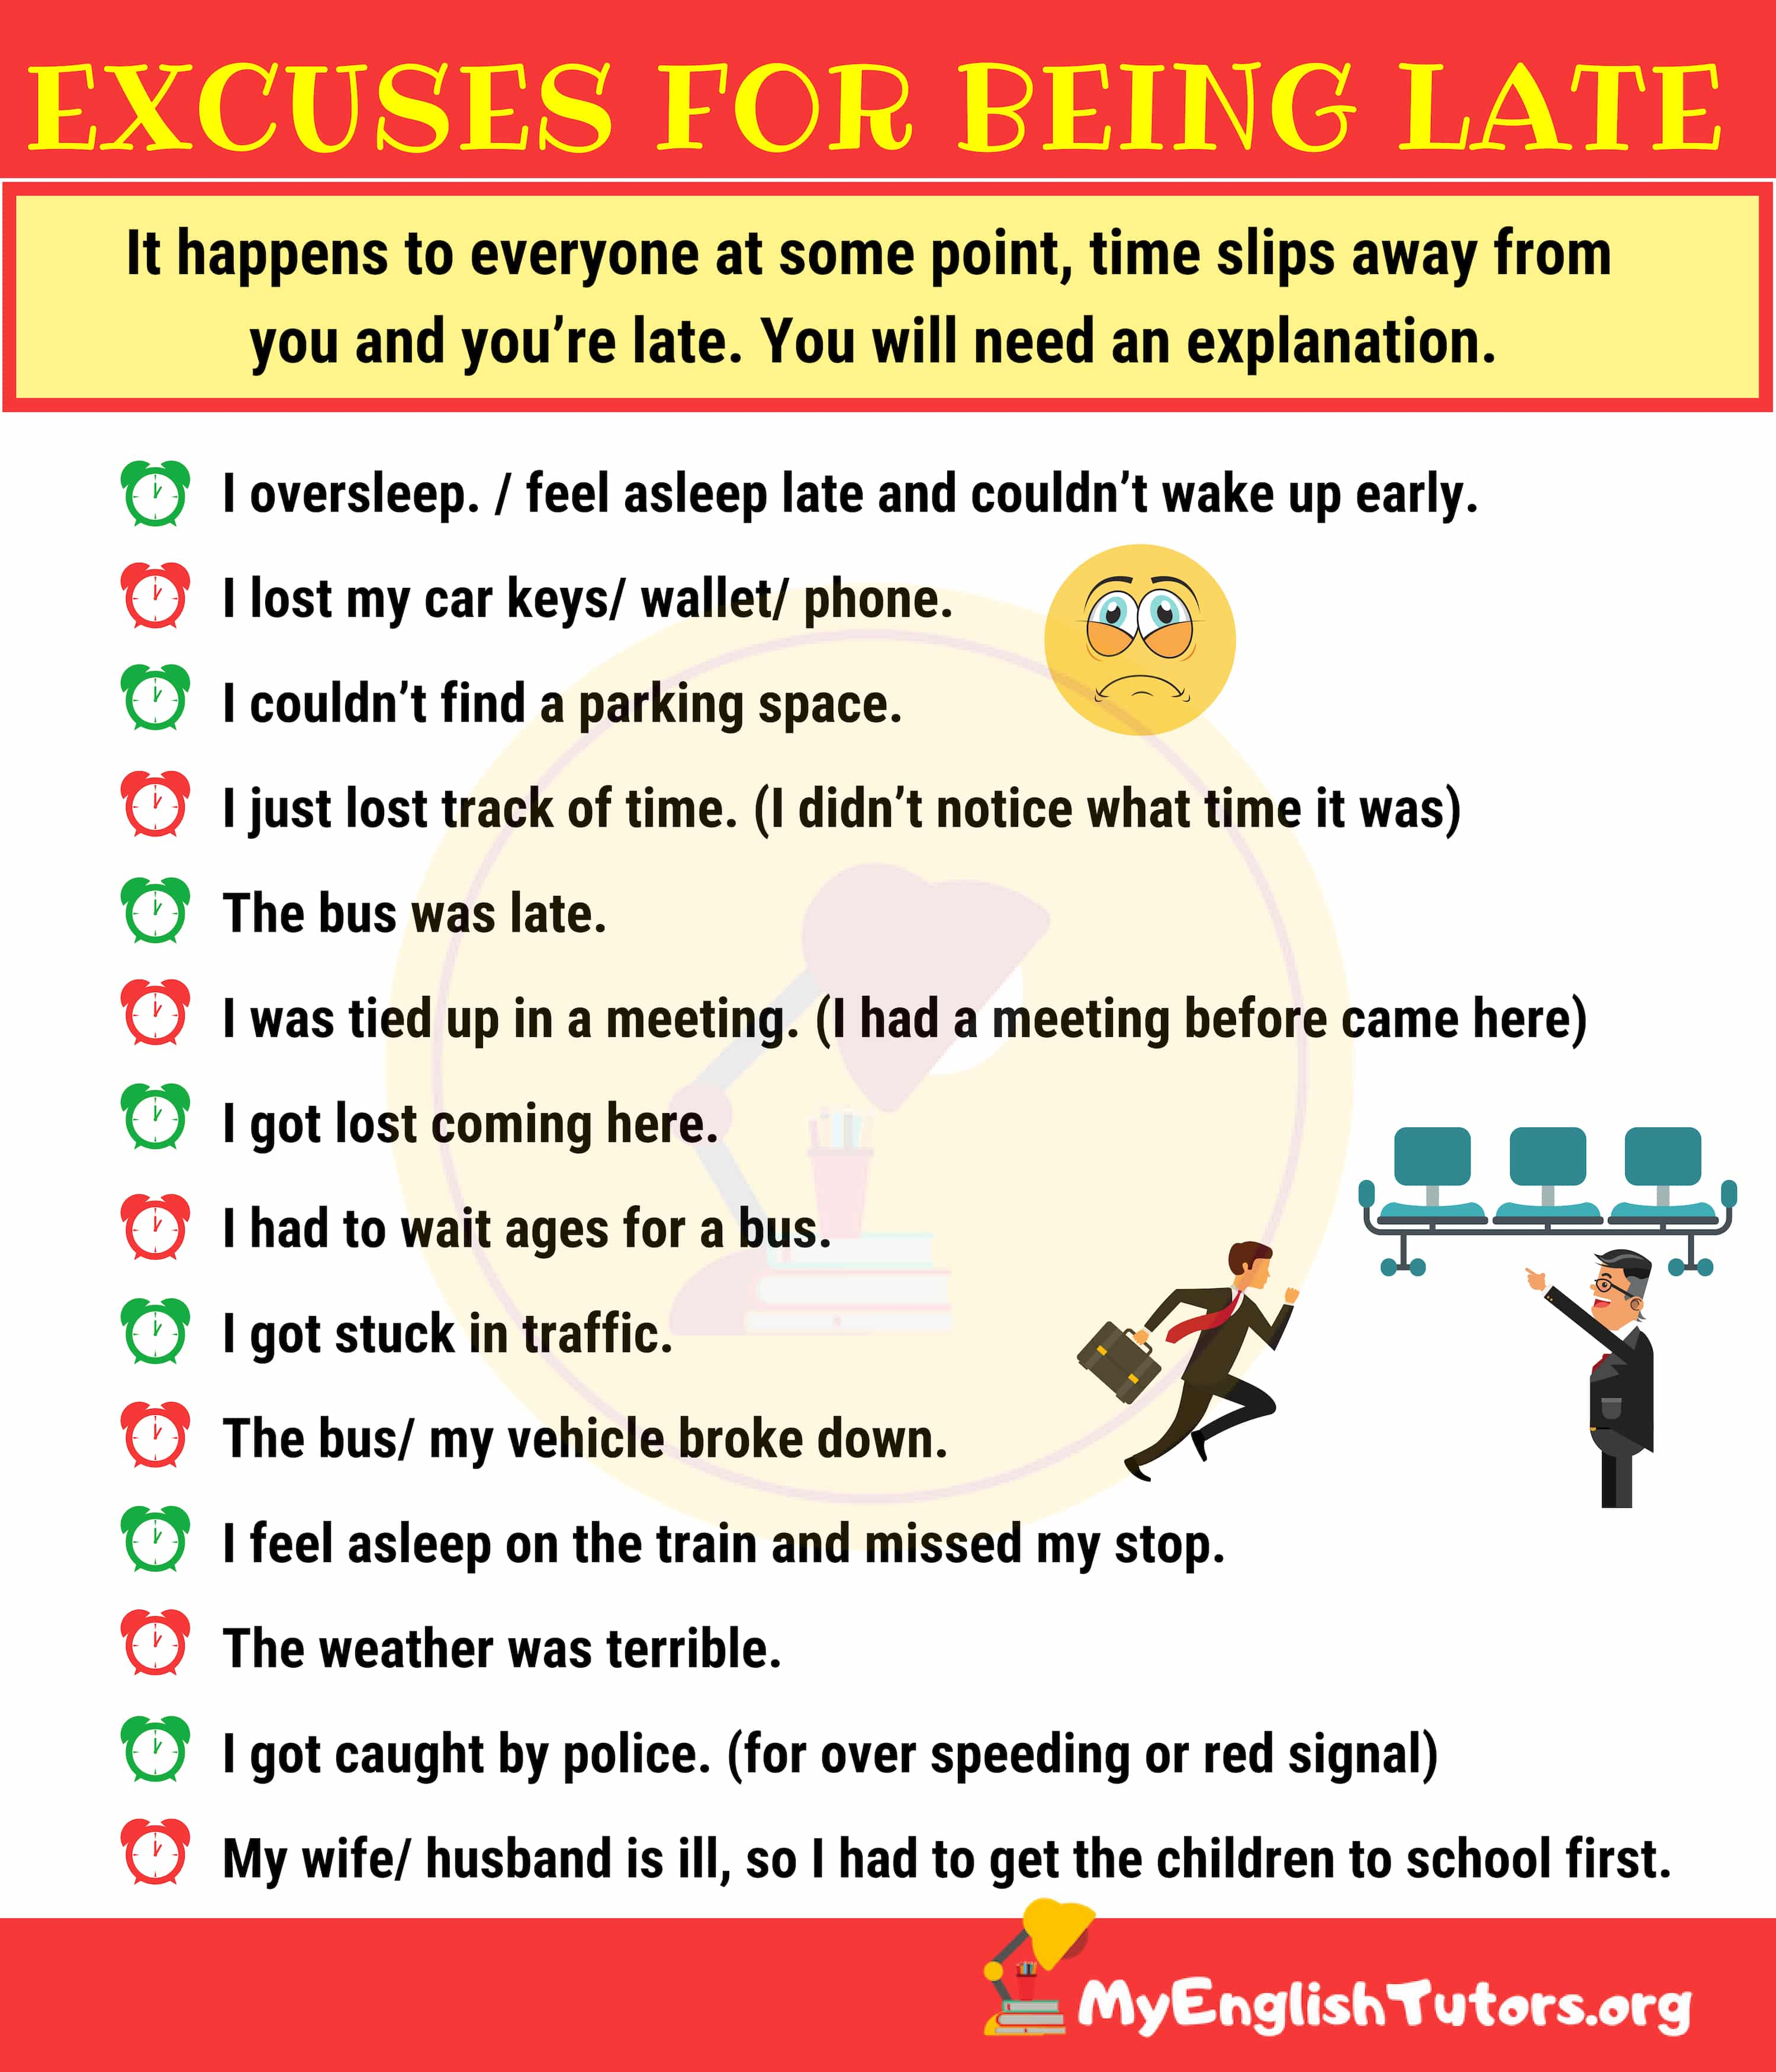 15 Excuses for Being Late in English